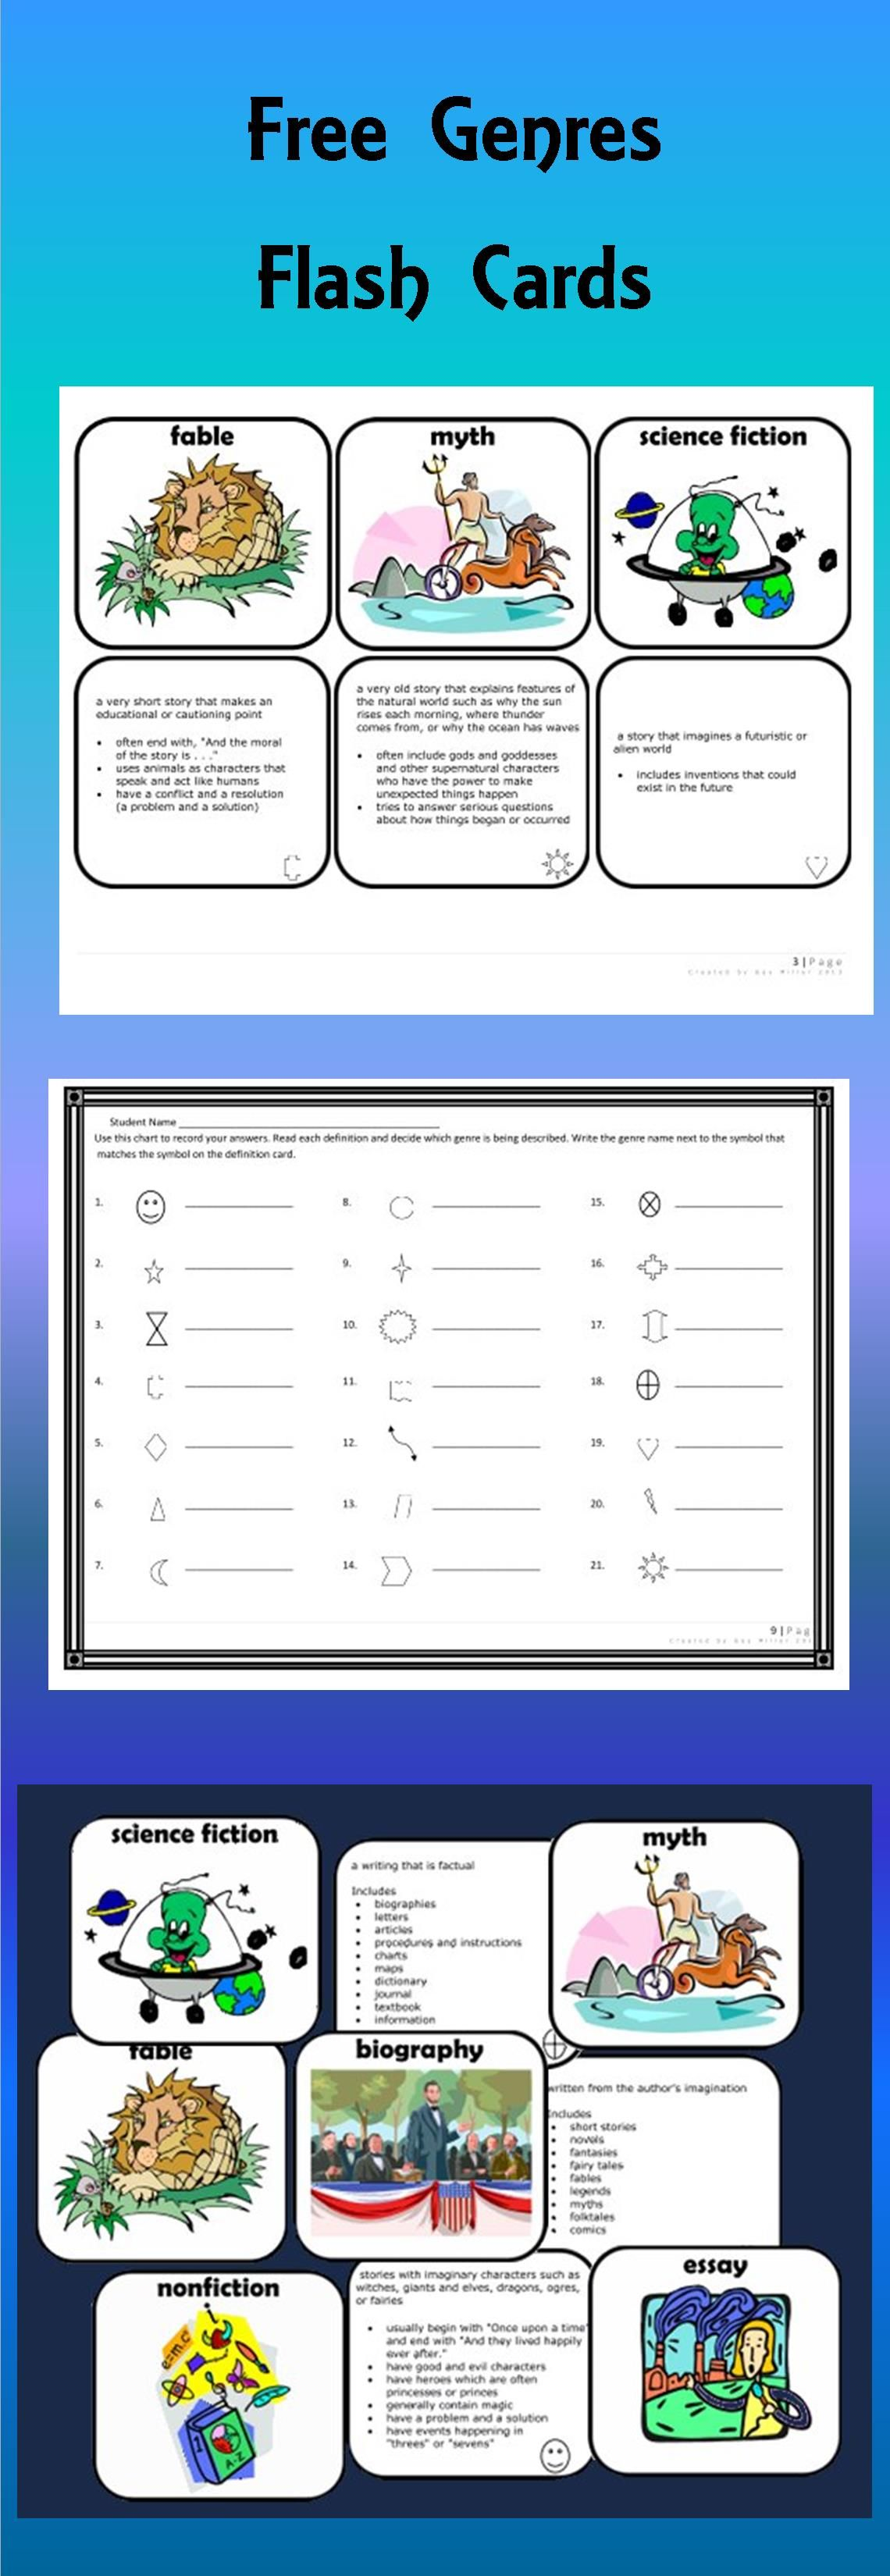 The Genre Flash Cards contain 21 pairs of picture and definition cards. You may use these genre cards to practice identifying genres in a number of fun ways.